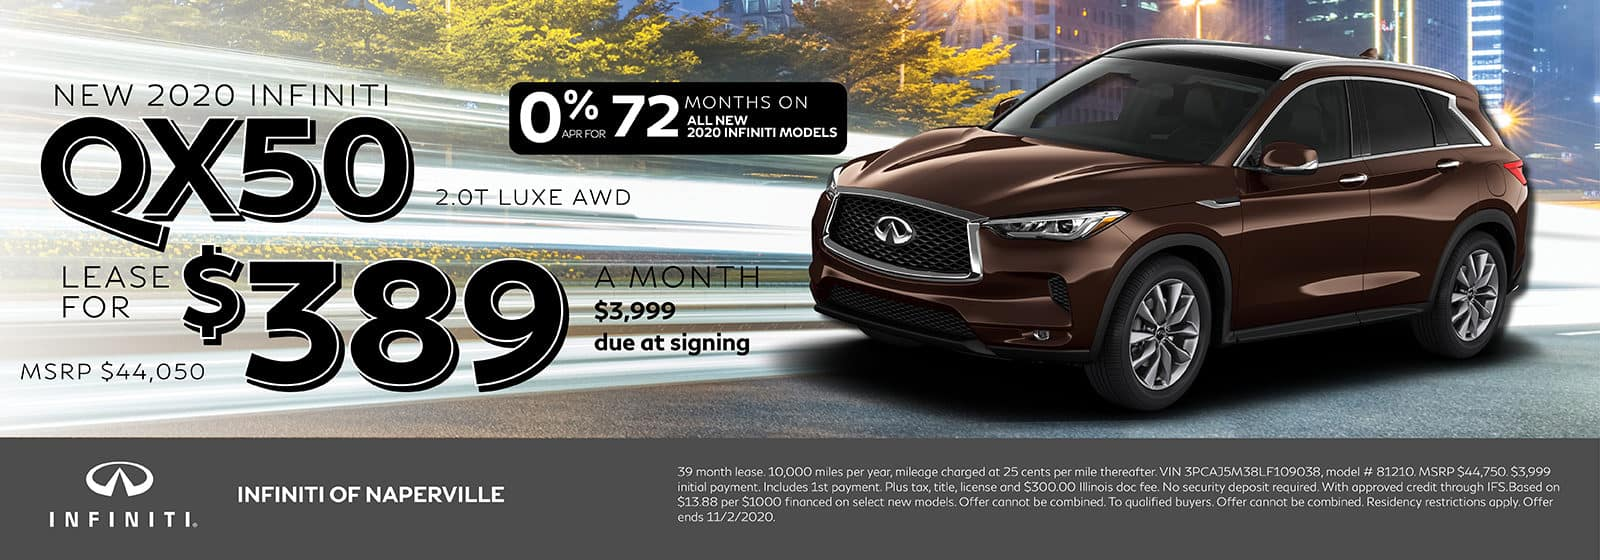 2020 INFINITI QX50 lease offer, $389/mo for 72 Months | Naperville, IL